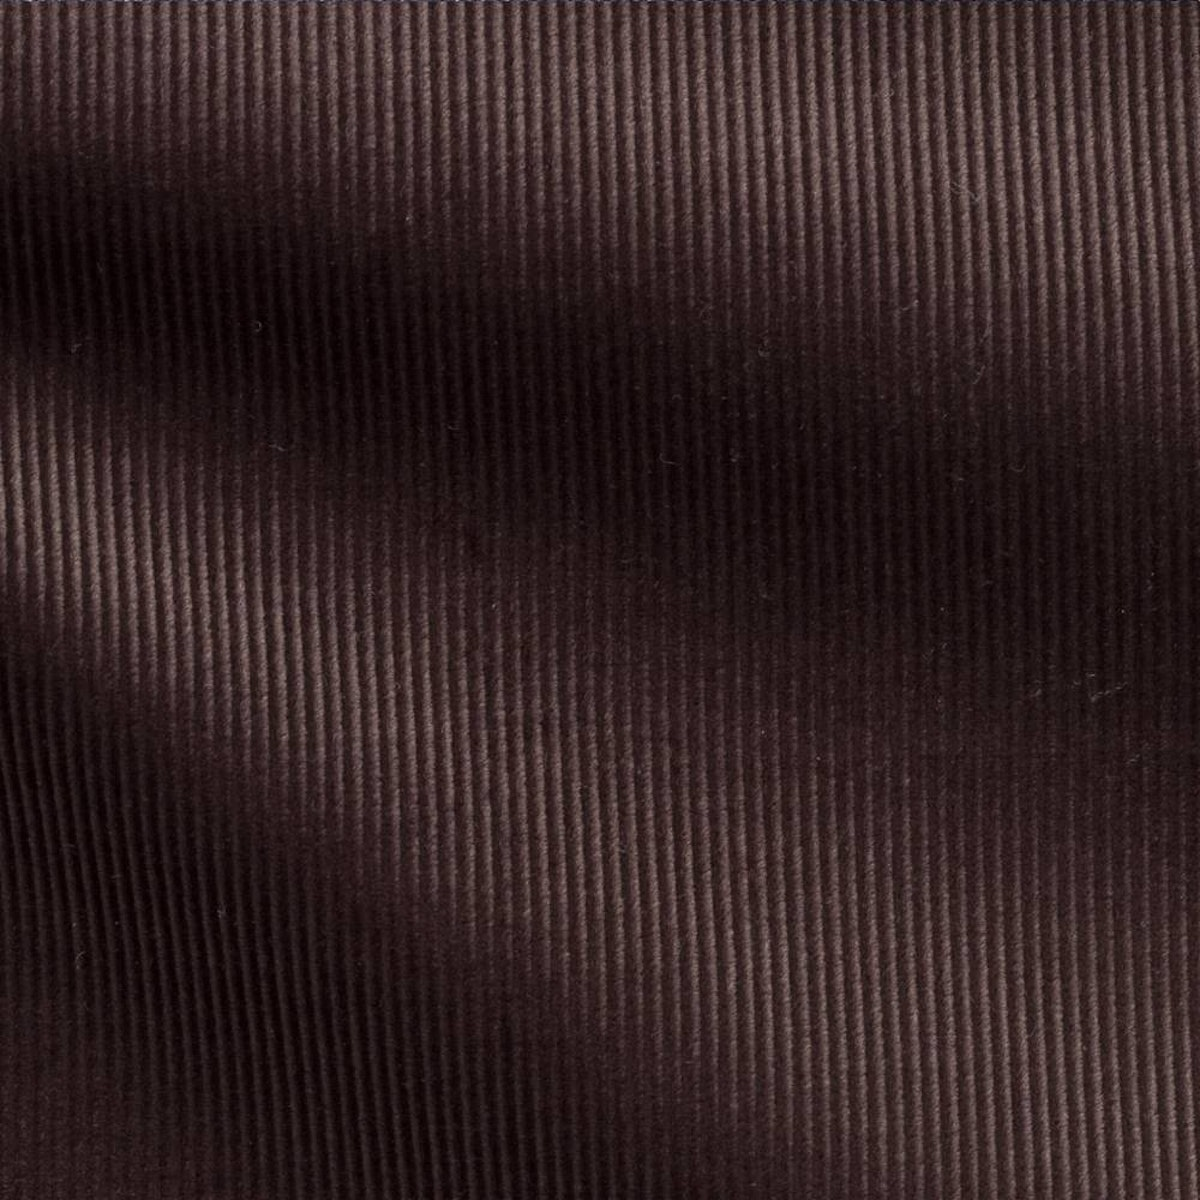 InStitchu Shirt Fabric